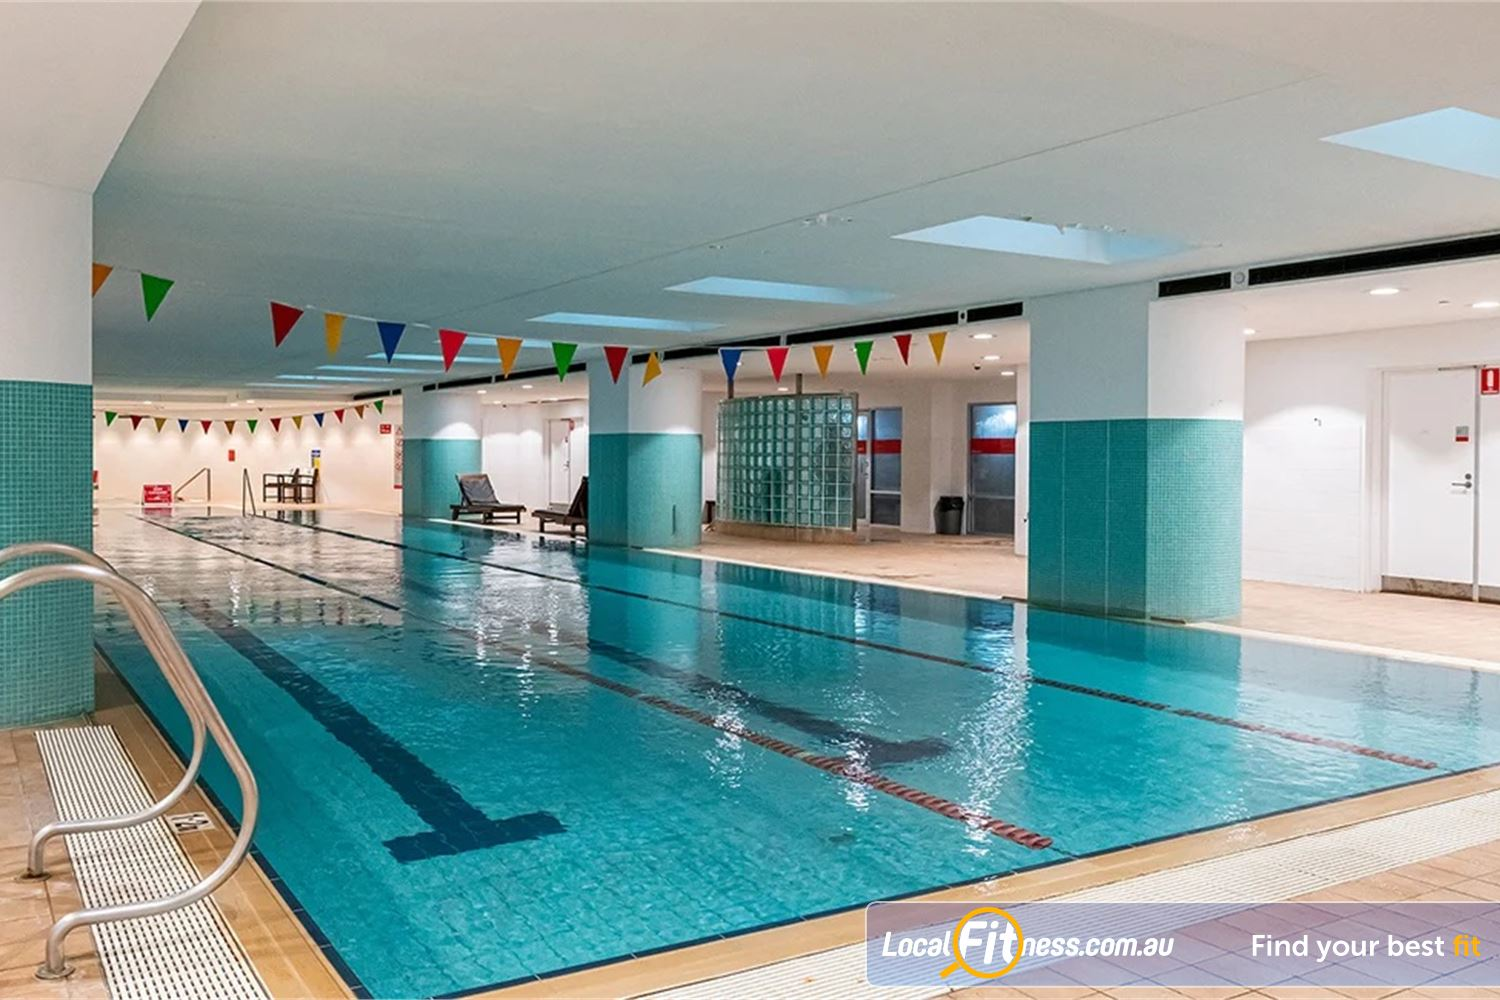 Fitness First Platinum Pitt St Sydney Relaxing lap lane swimming in our indoor Sydney swimming pool.